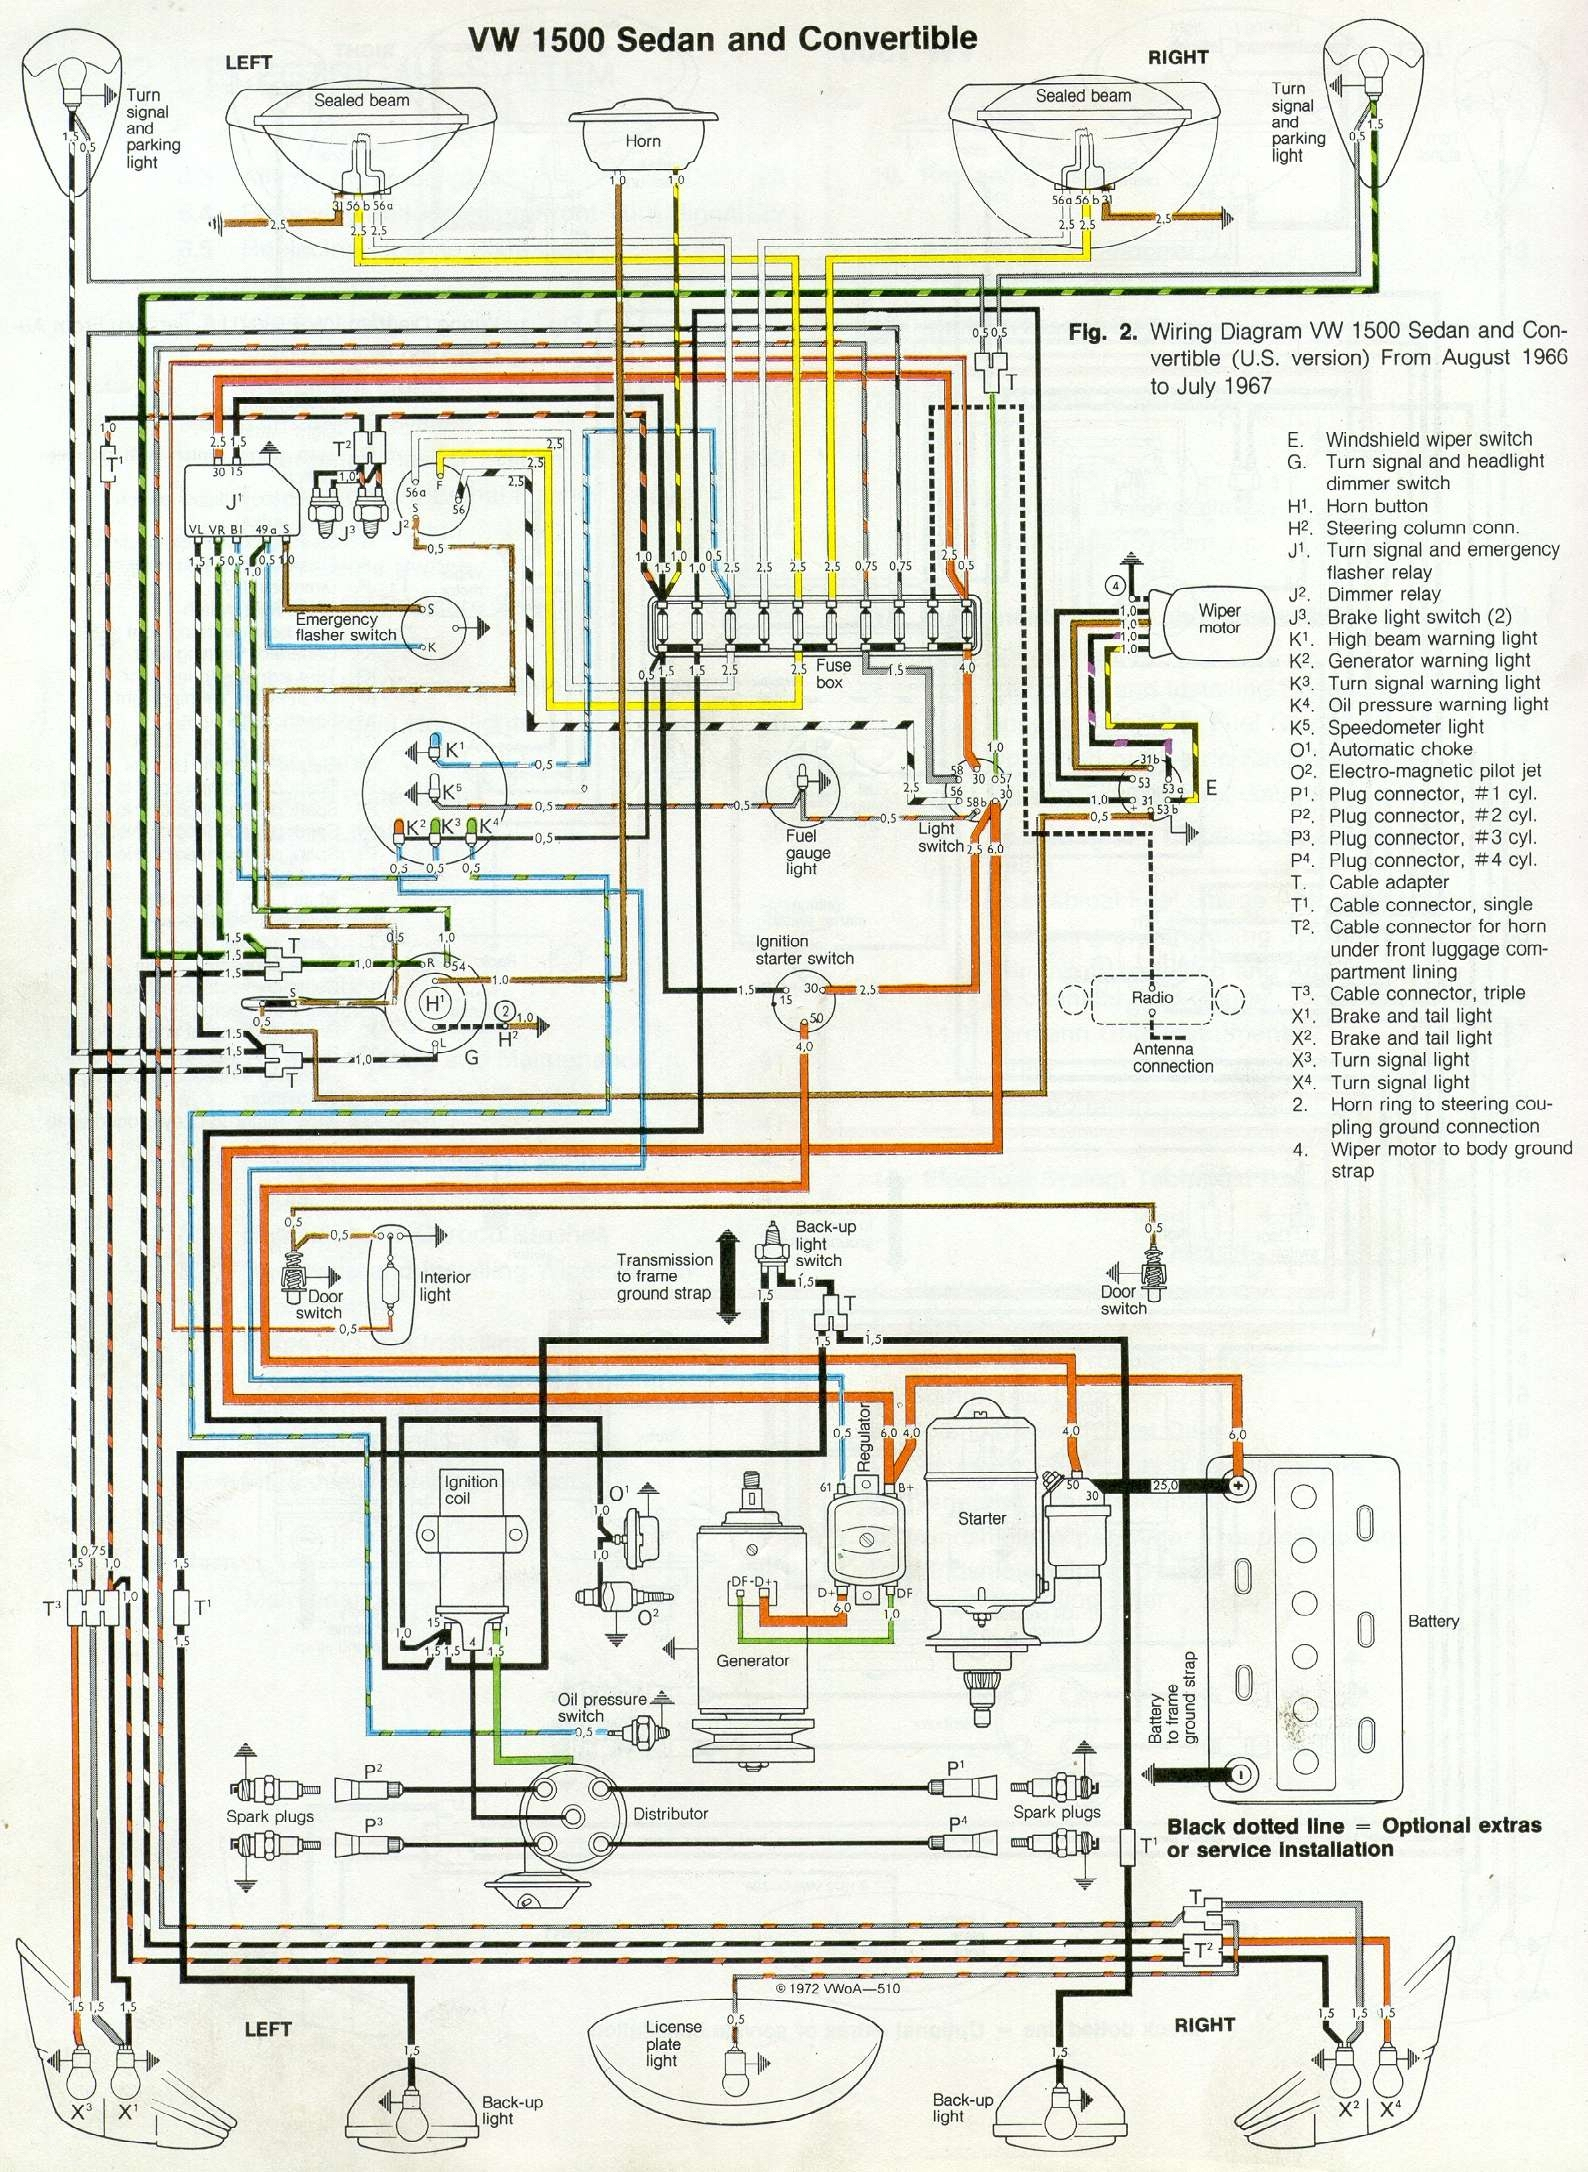 vw golf mk1 headlight wiring diagram clipsal 2 way light switch 3966 and 3967 beetle 1967